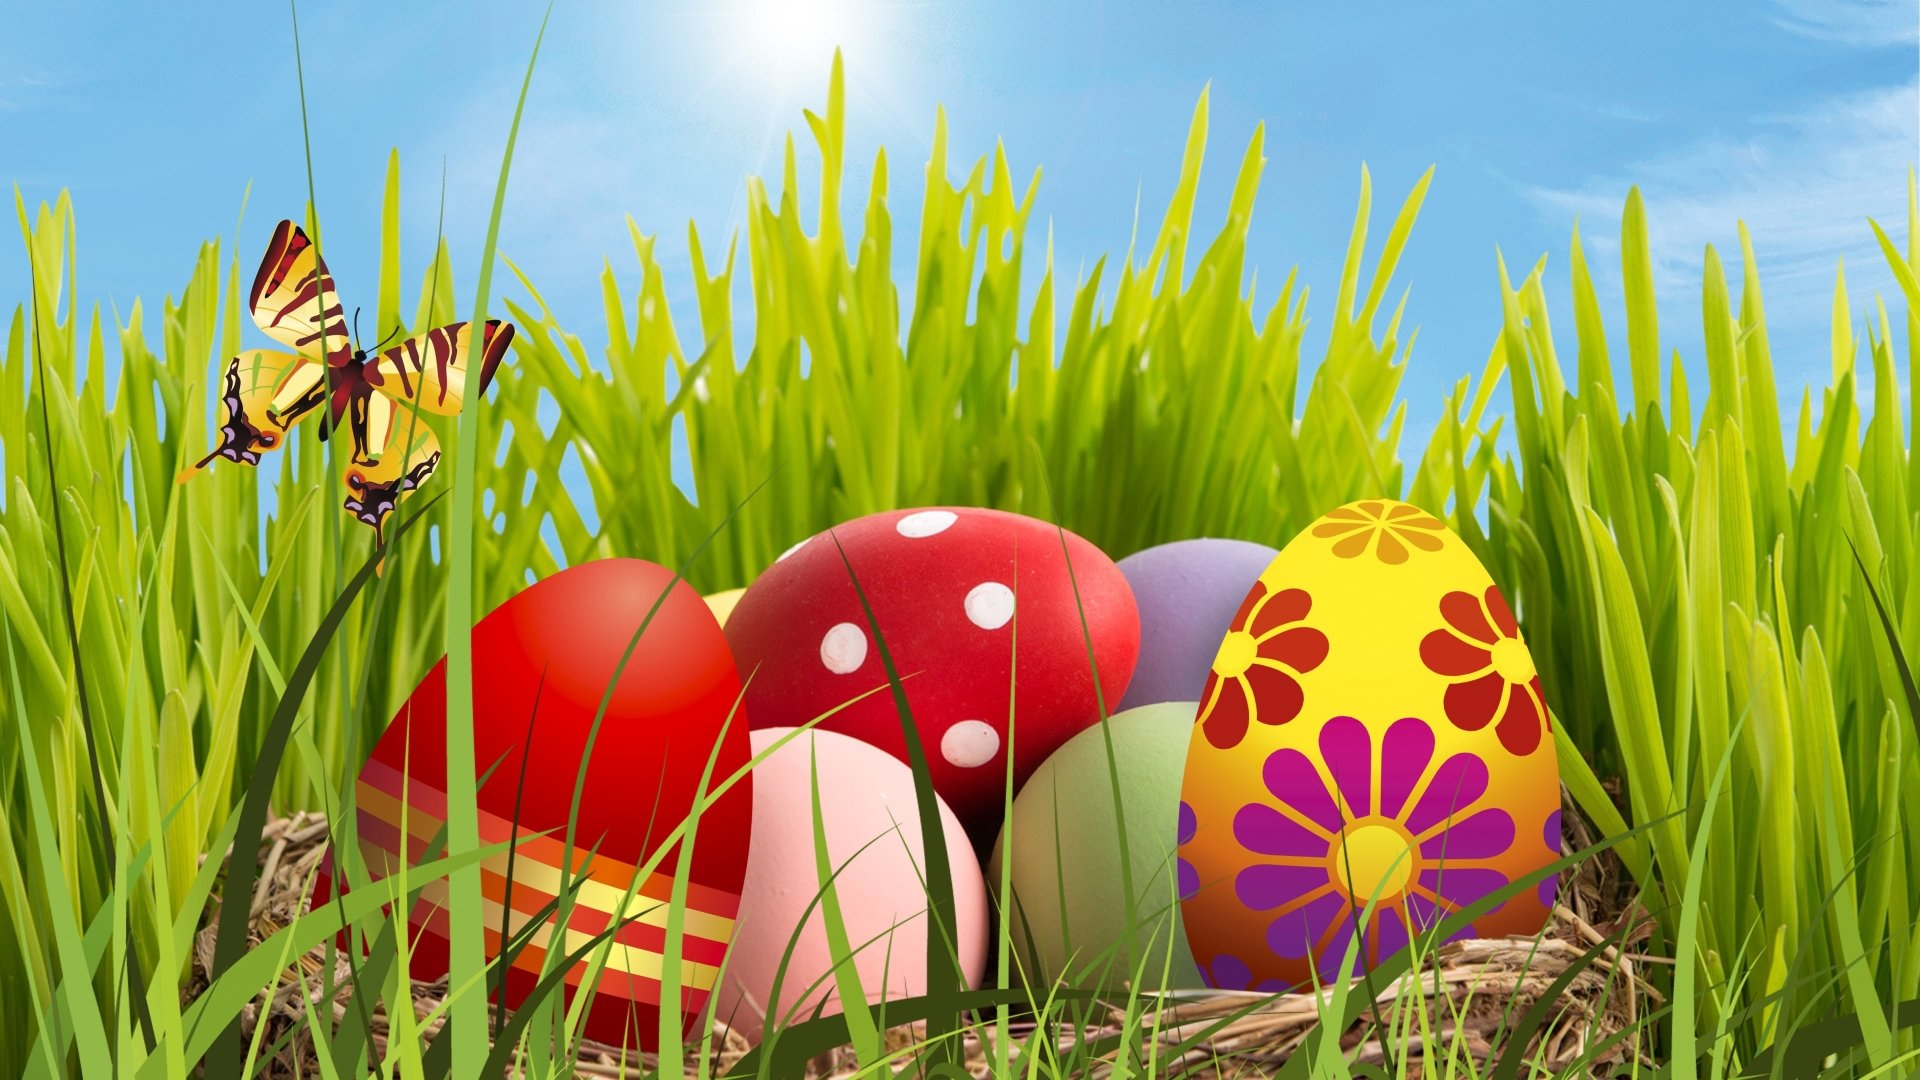 Holiday - Easter  Holiday Egg Easter Egg Colors Colorful Grass Green Butterfly Close-Up Wallpaper